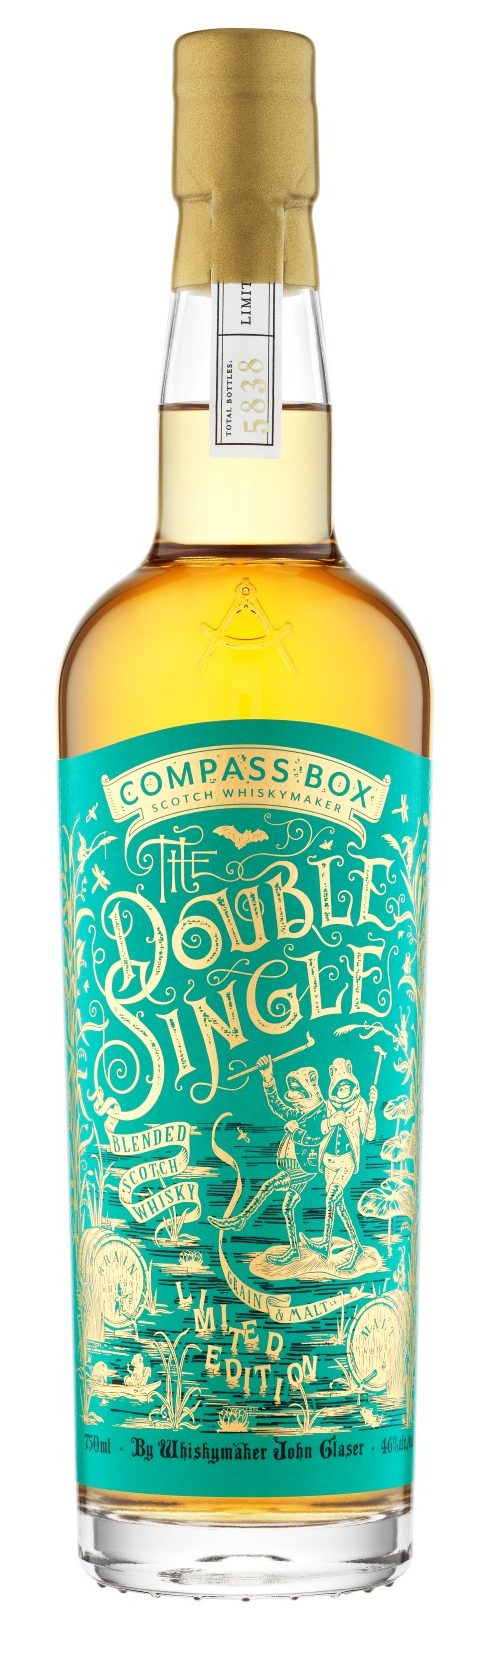 Compass Box Double Single (2017)